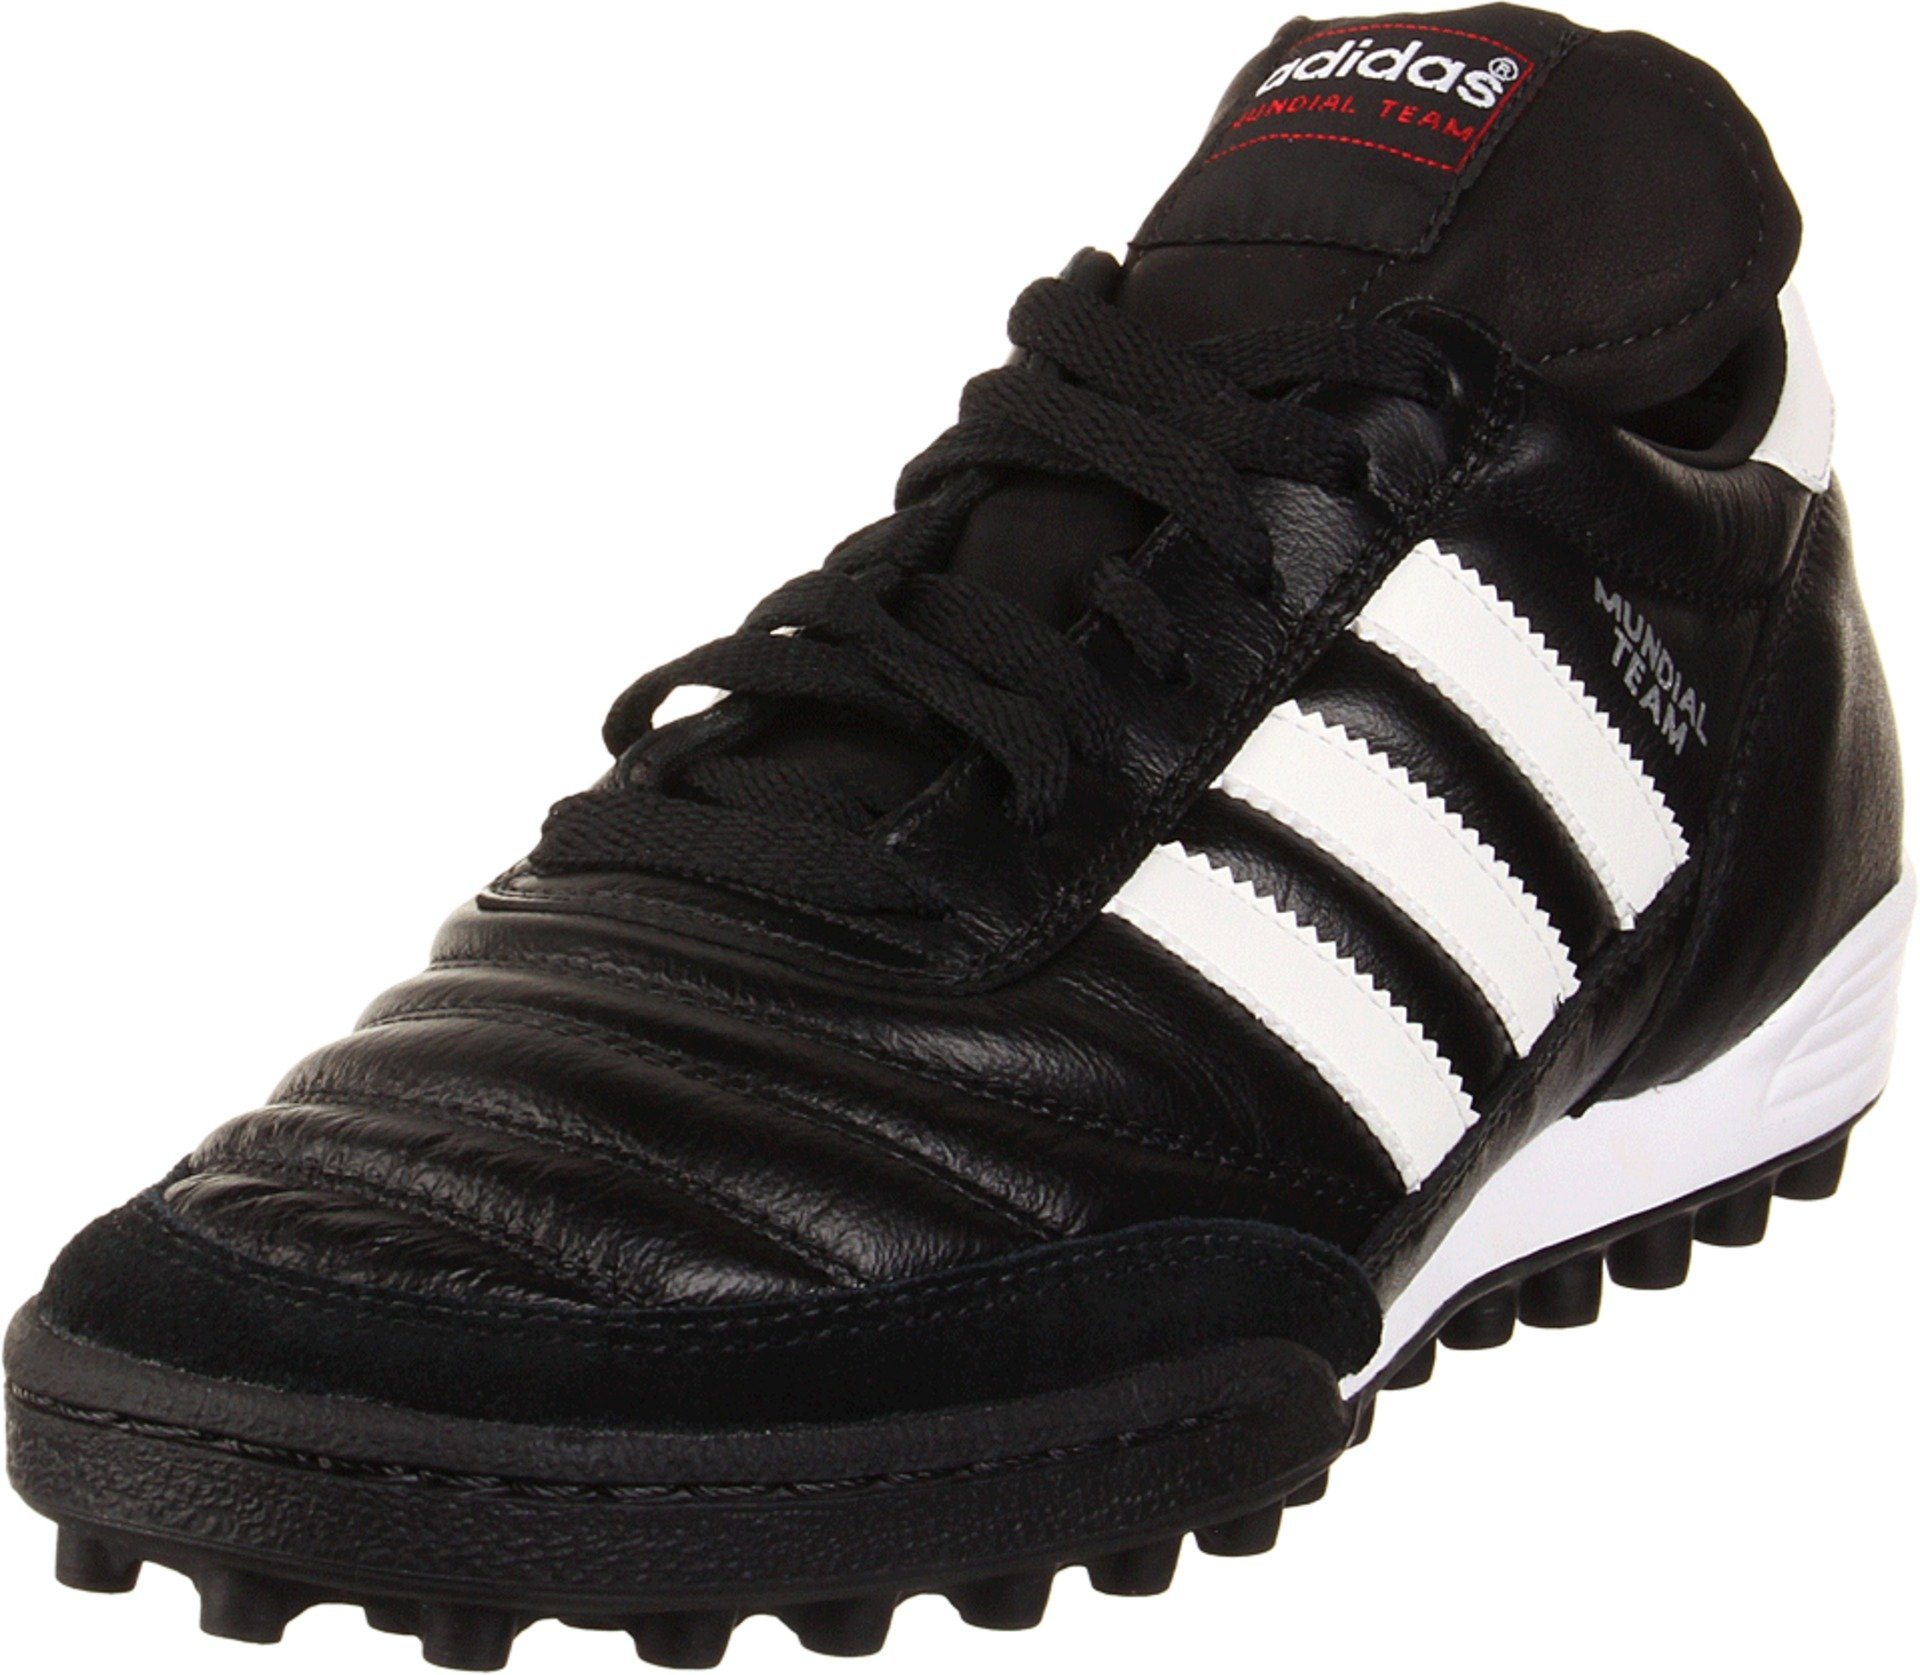 adidas Performance Men's MUNDIAL TEAM Athletic Shoe, black/white/red, 9.5 M US by adidas